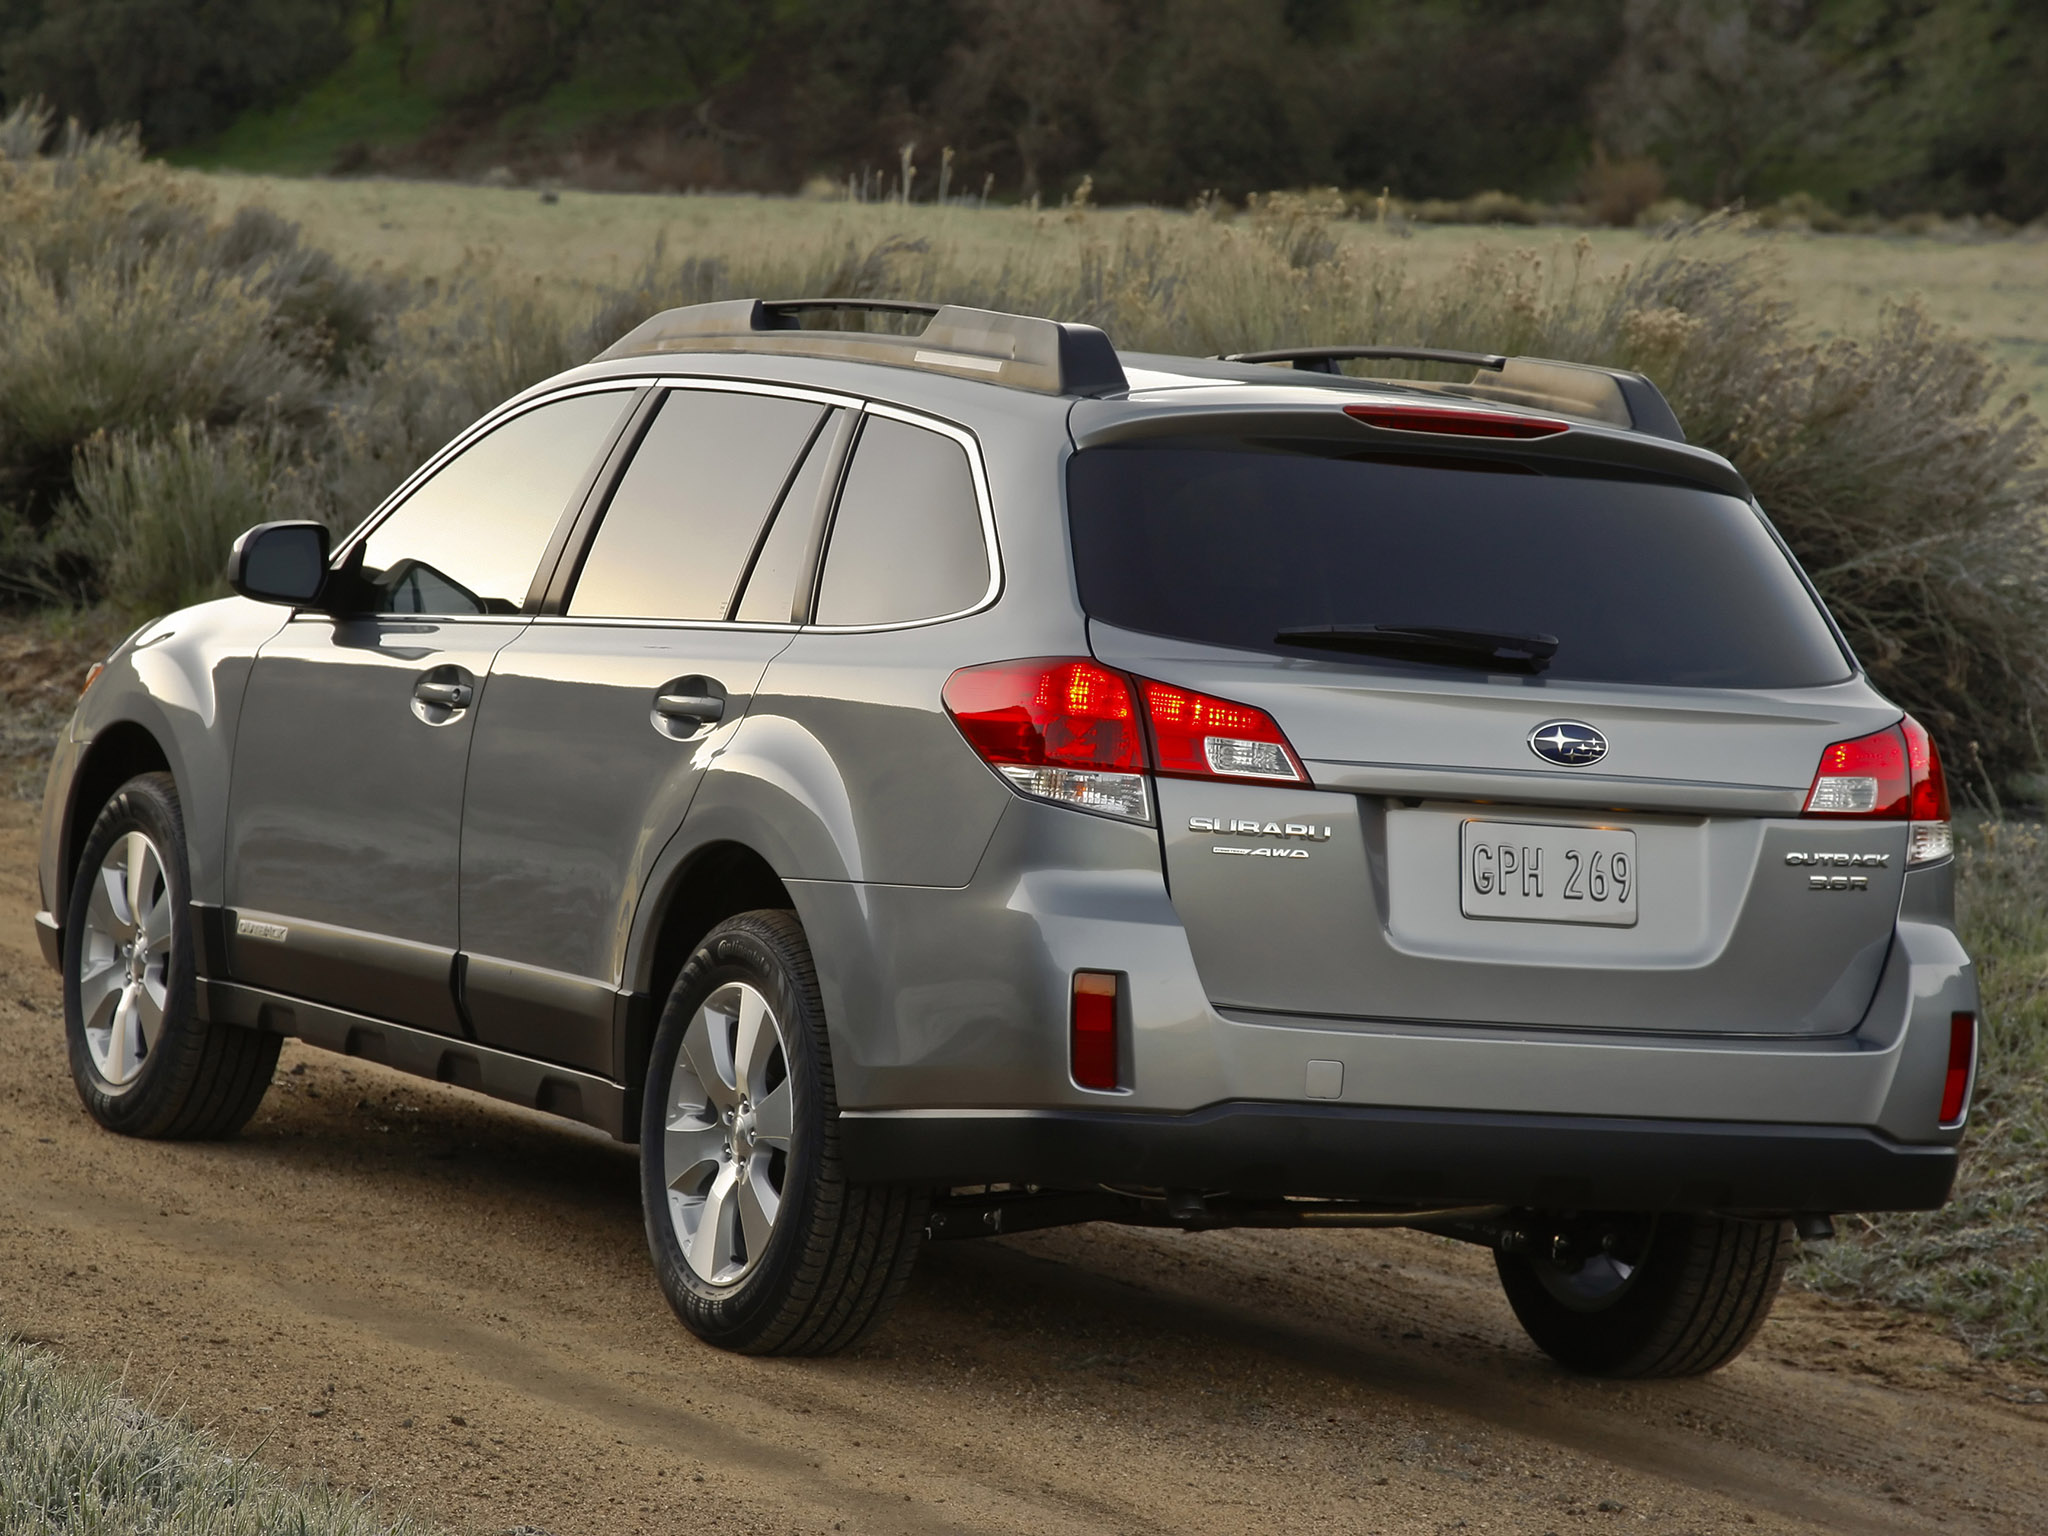 subaru outback 3 6r 2009 subaru outback 3 6r 2009 photo 13 car in pictures car photo gallery. Black Bedroom Furniture Sets. Home Design Ideas